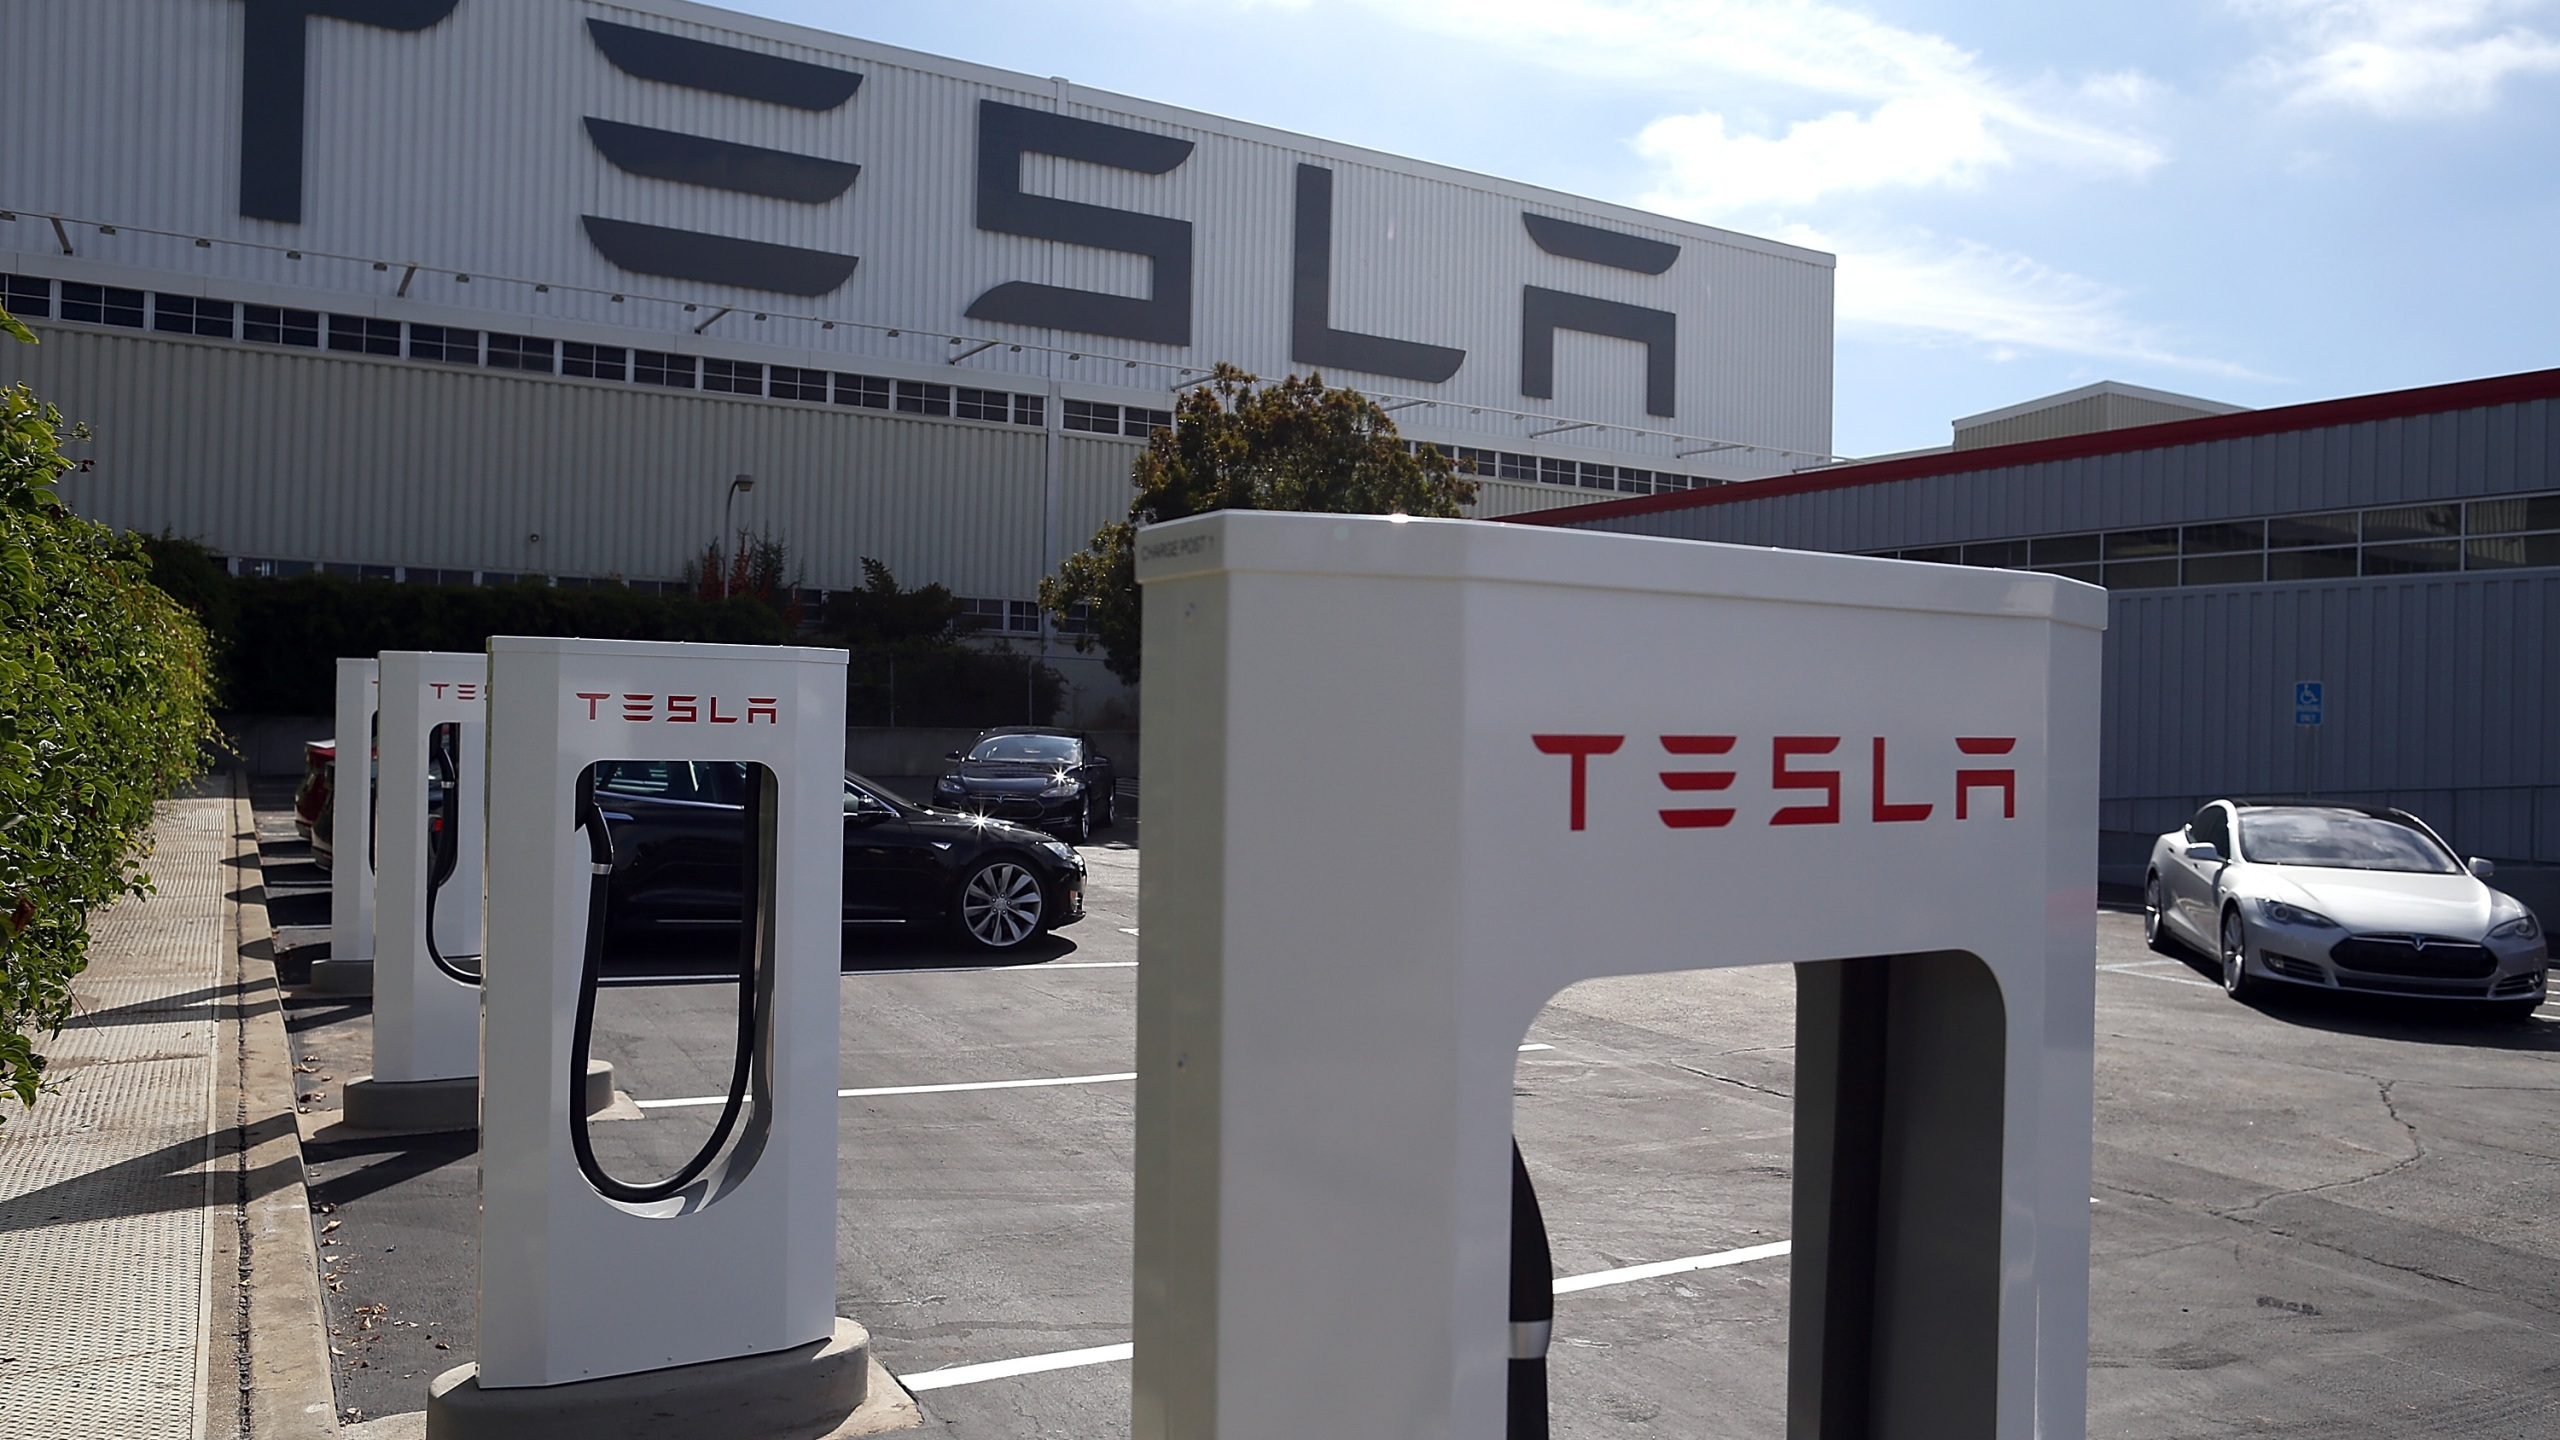 The Tesla Factory is seen on Aug. 16, 2013 in Fremont, California. (Justin Sullivan/Getty Images)